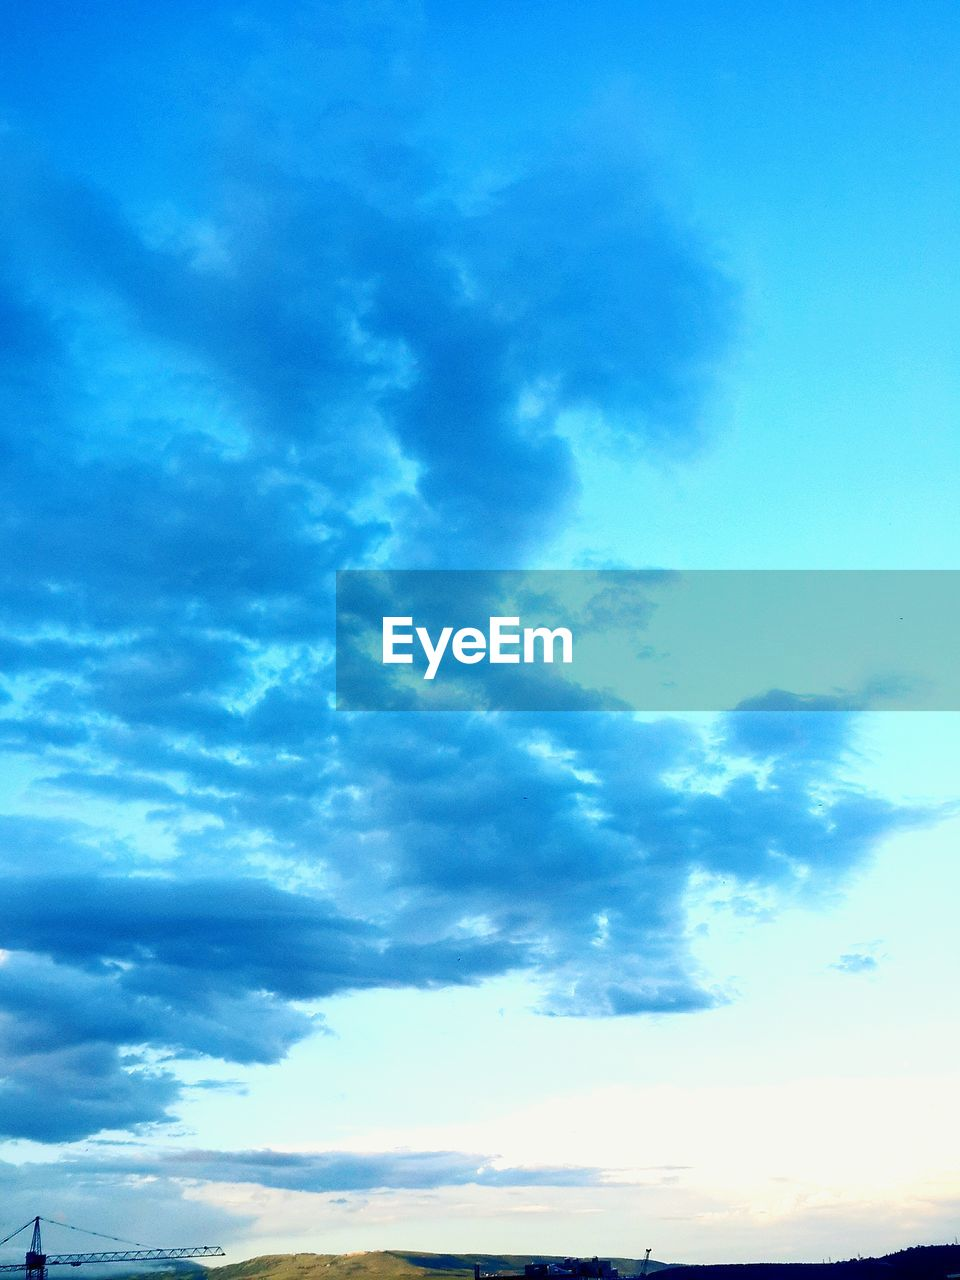 sky, beauty in nature, nature, blue, cloud - sky, scenics, low angle view, tranquility, no people, outdoors, tranquil scene, day, sky only